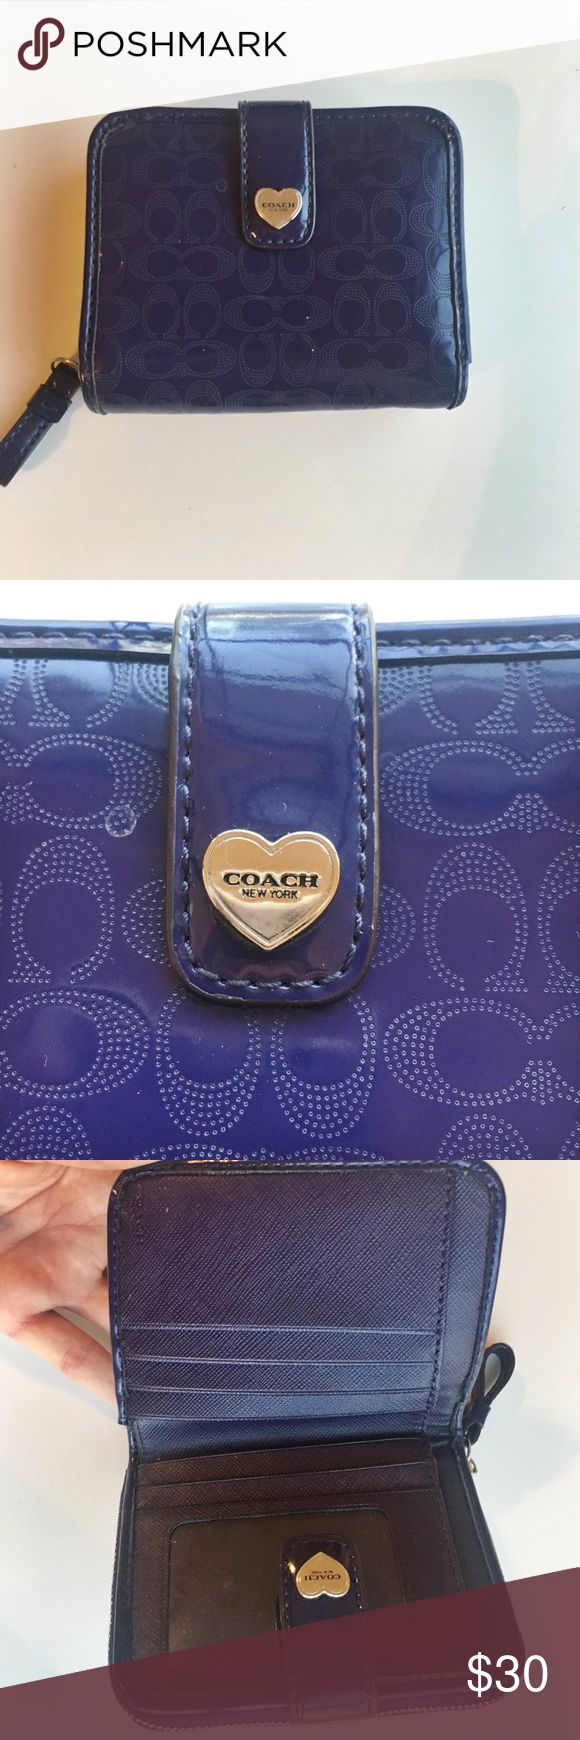 Purple patten leather embossed Coach wallet This a once used purple patten leather coach wallet. Great condition. There's no scratches, no scuffs, all the original hardware is intact/works. The wallet has an ID holder and can hold seven additional cards as well as cash. The zipper part holds six cards and coins. Coach Bags Wallets